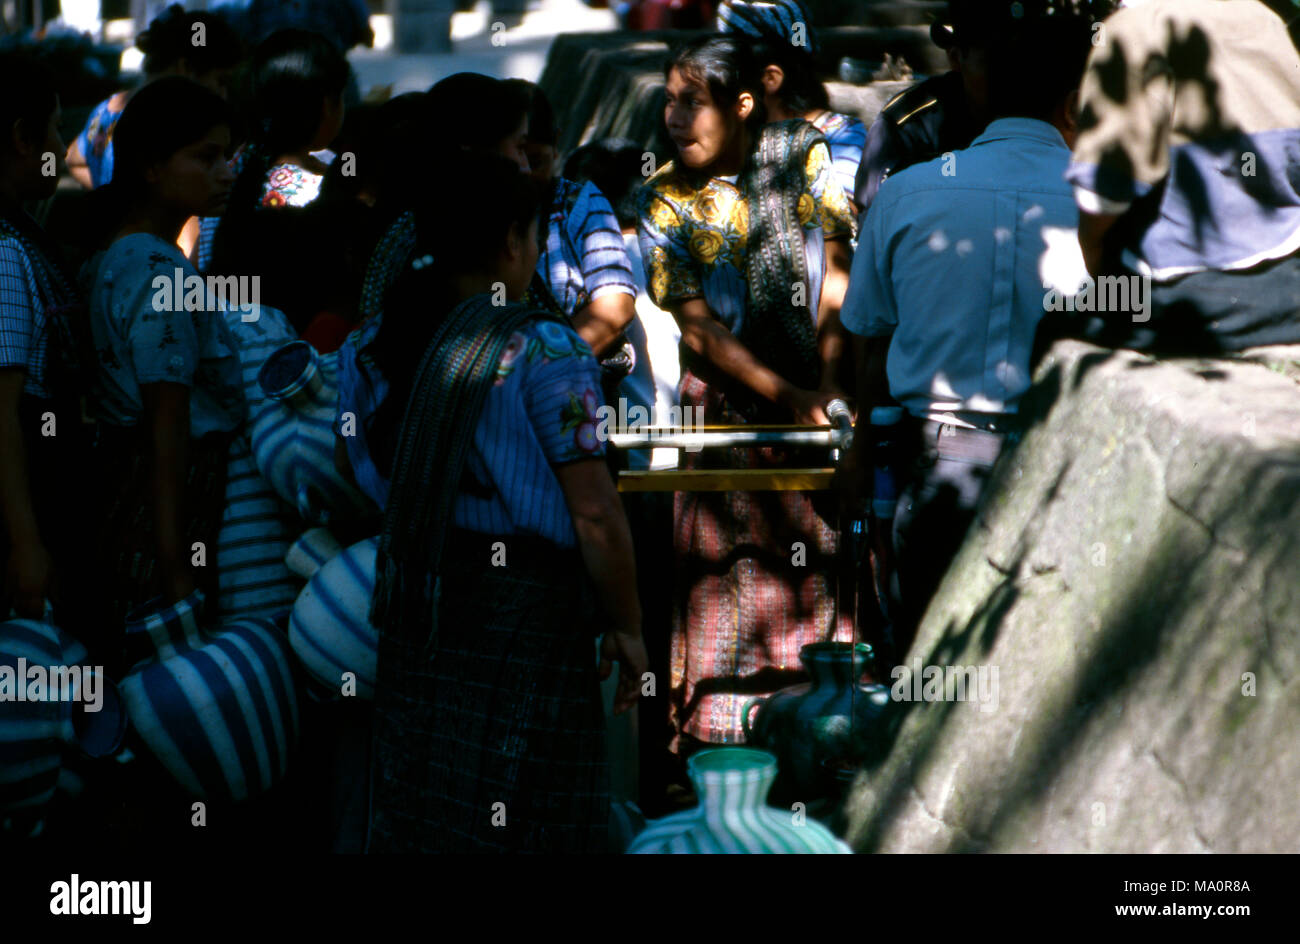 Tz'utujil Maya queue for their ration of drinking water in San Lucas Tolimán, Guatemala after the devastation of Hurricane Stan in October, 2005. - Stock Image